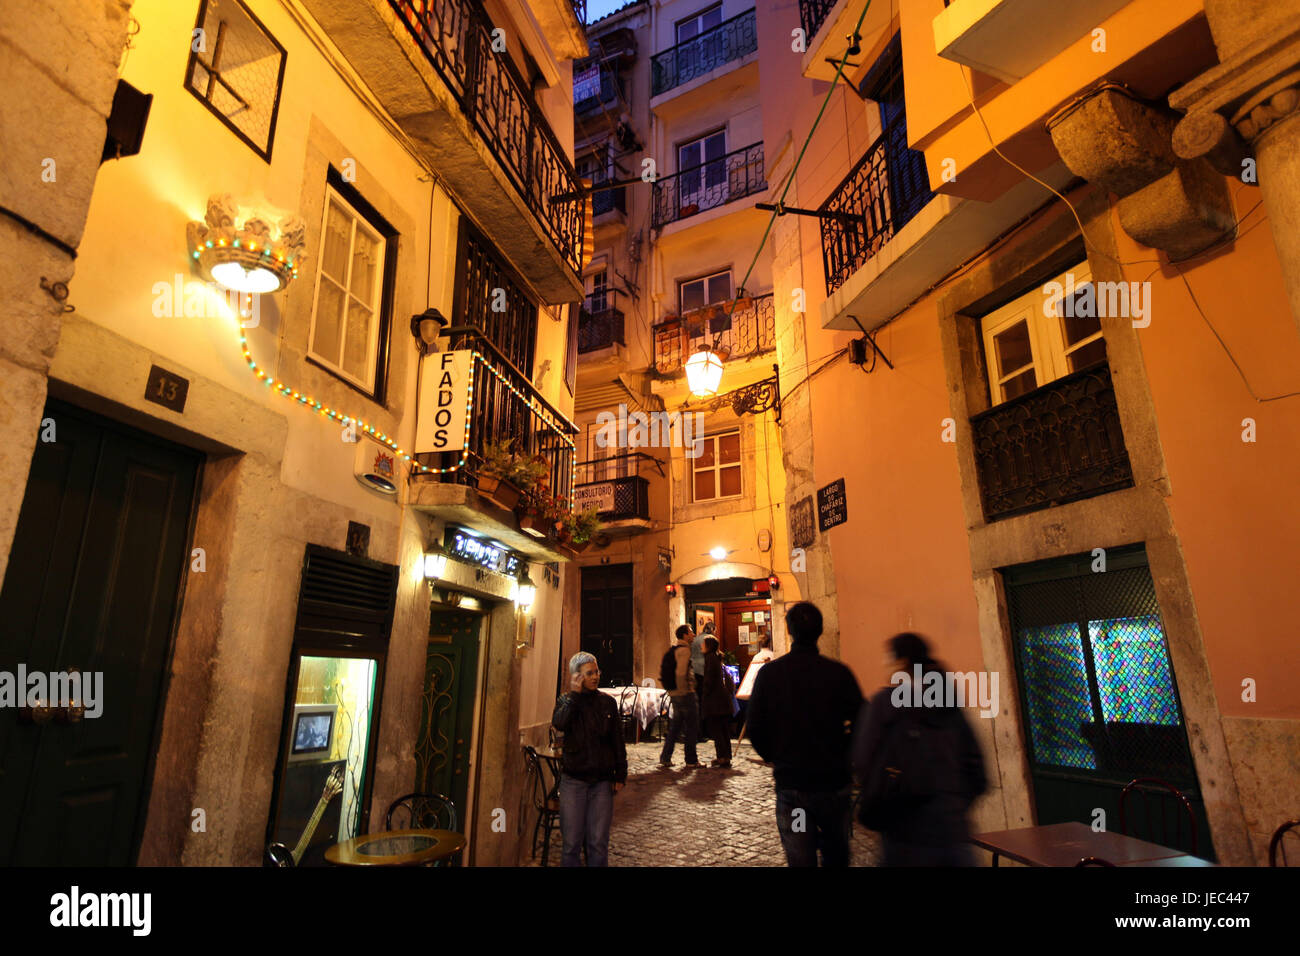 Portugal, Lisbon, Old Town, Alfama, lane, passer-by, at night, Stock Photo